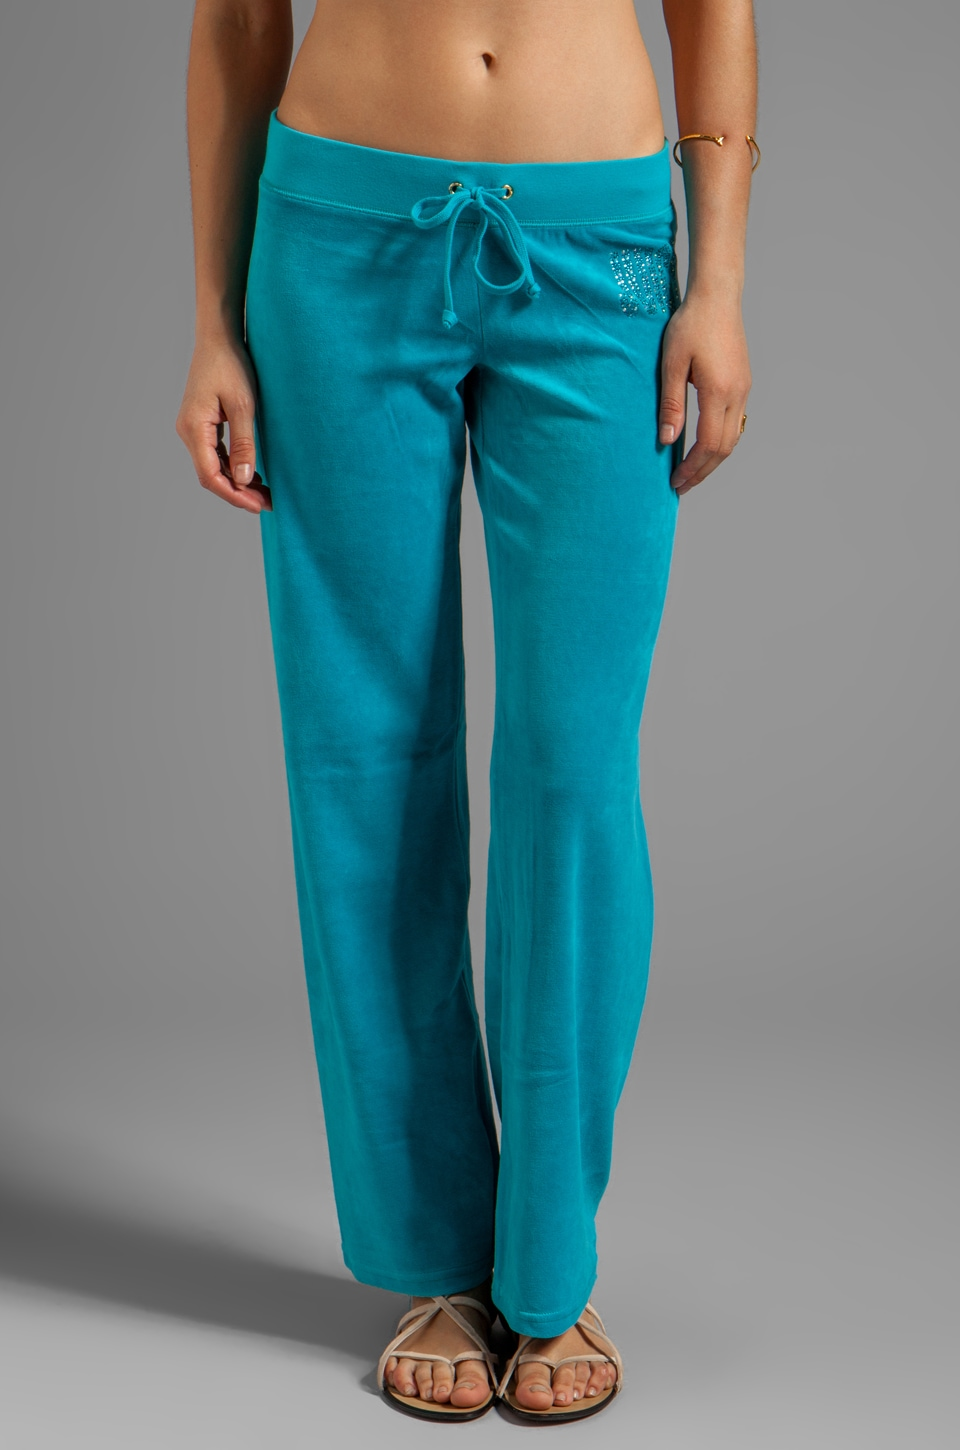 Juicy Couture Choose Juicy Velour Pant in South Pacific